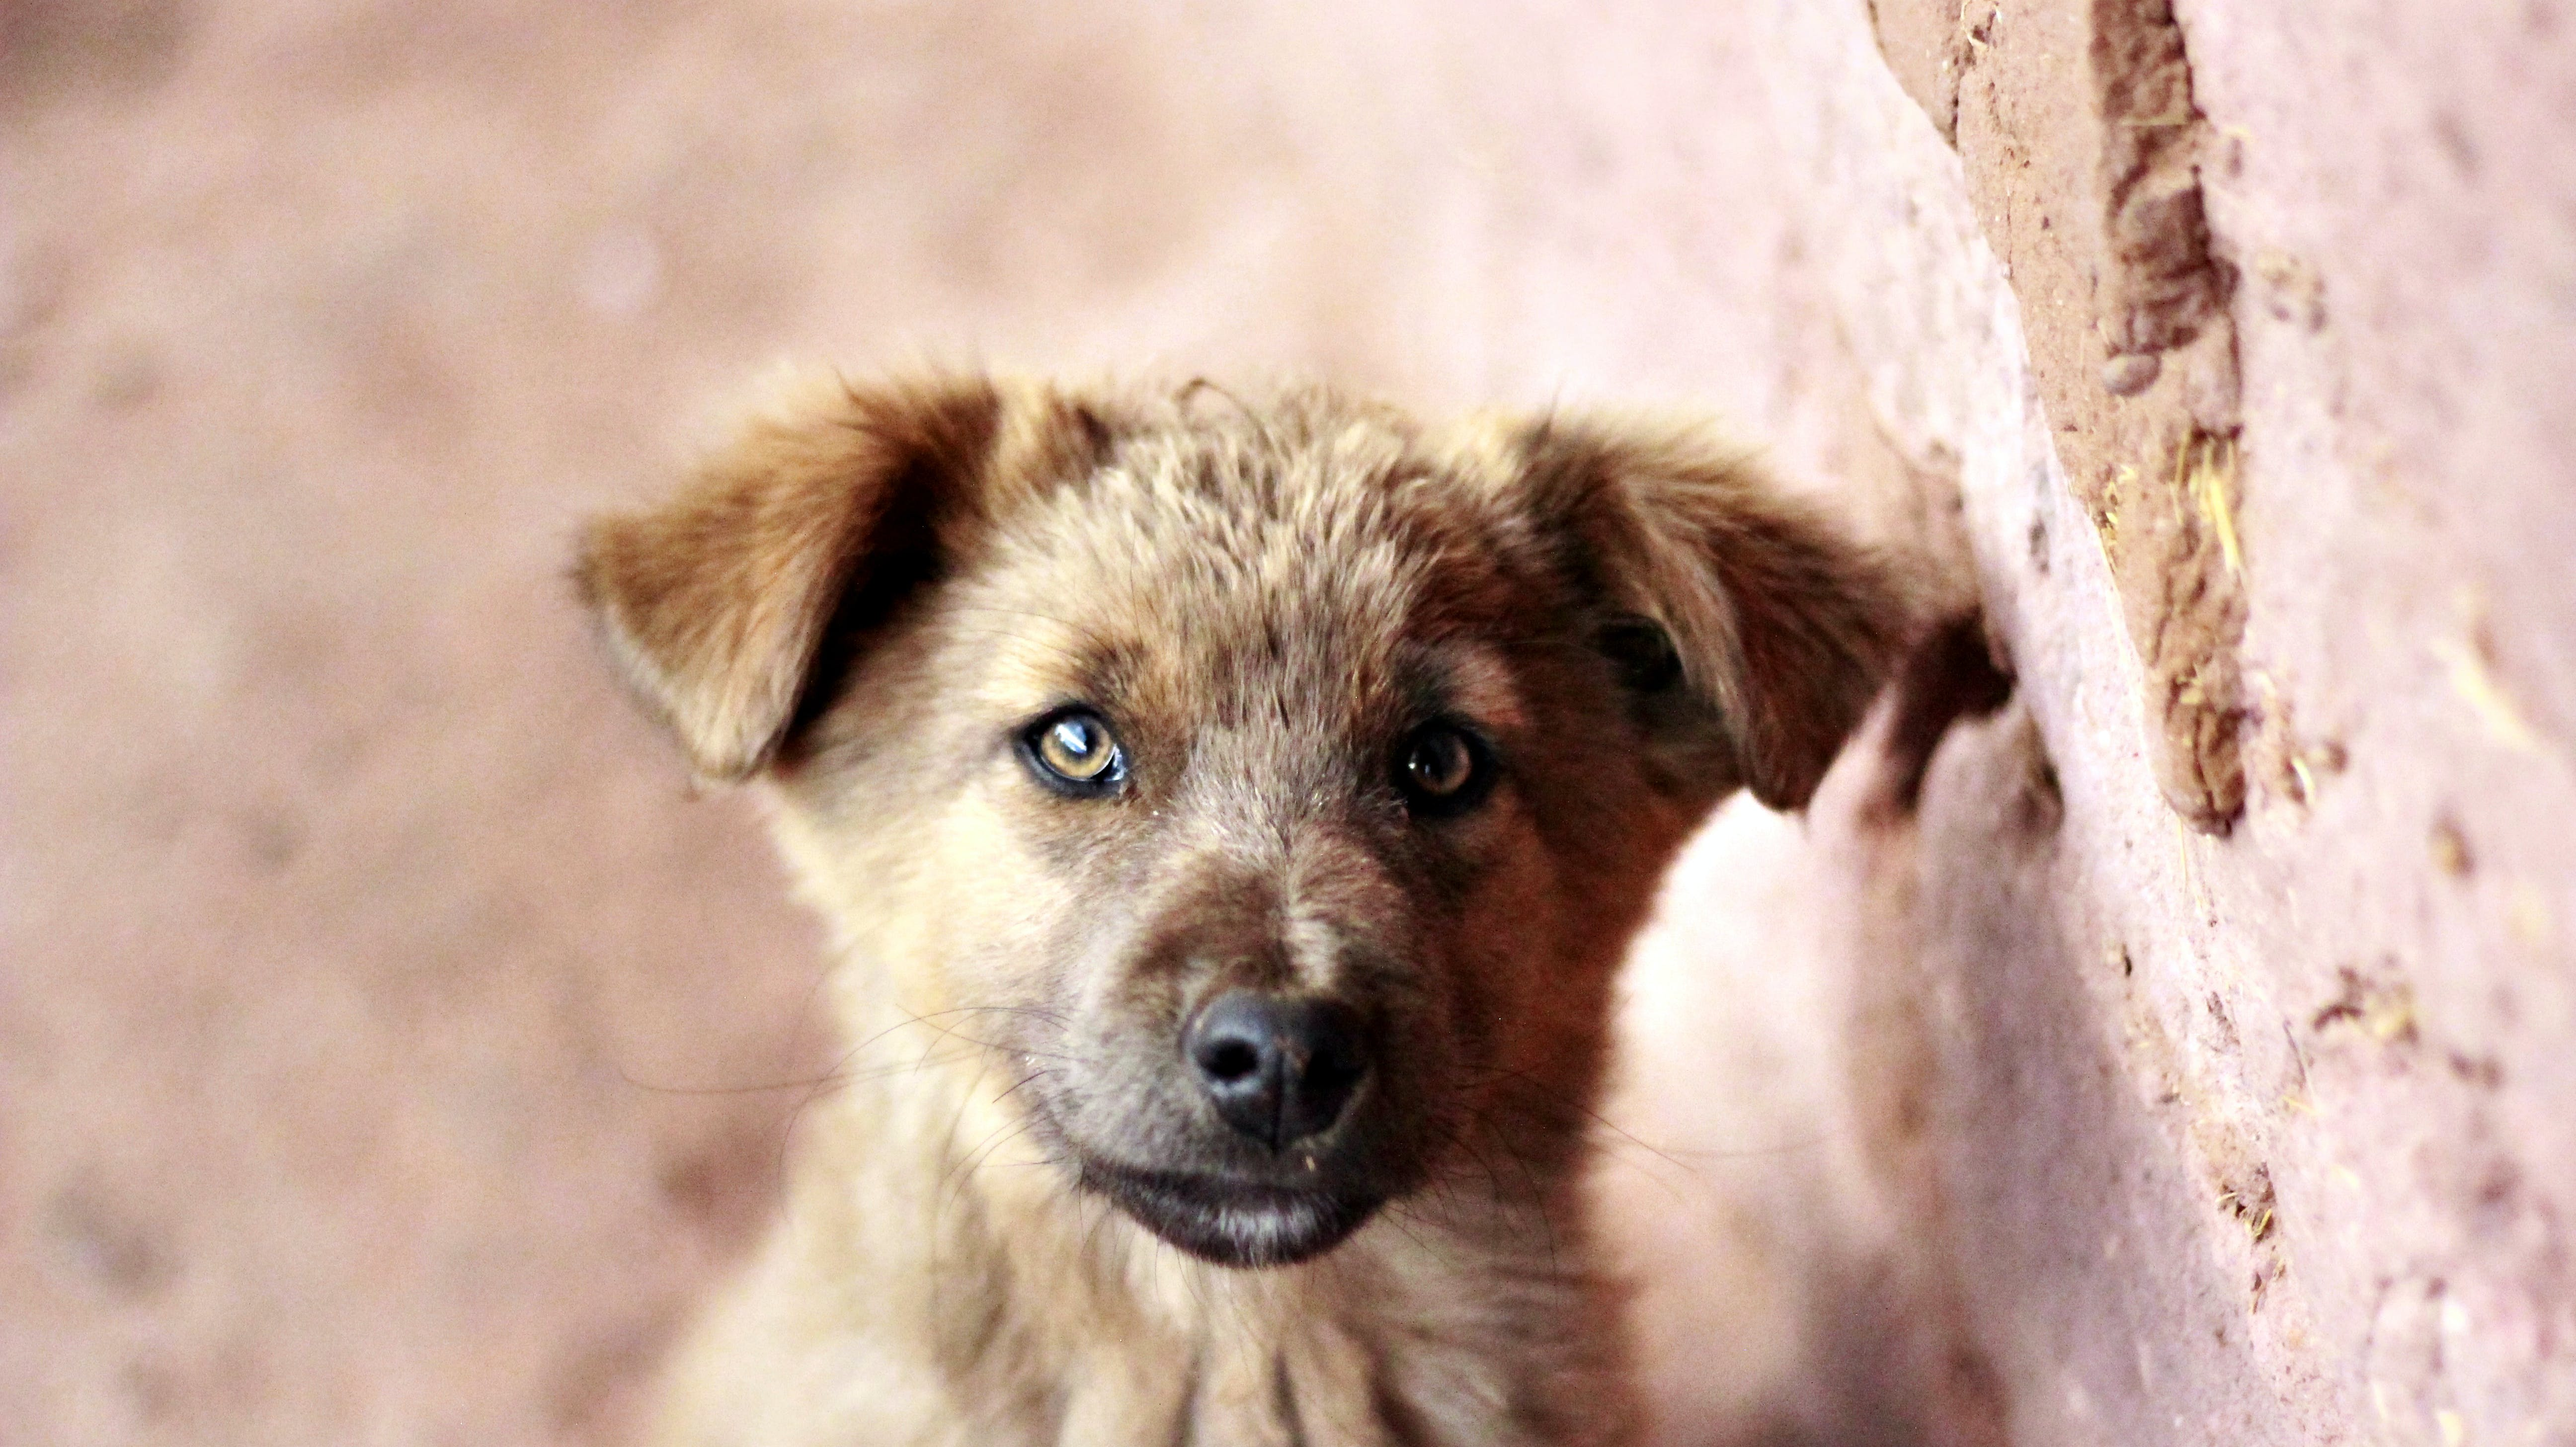 Brown Puppy Beside Brown Brick Wall Selective Focus Photography